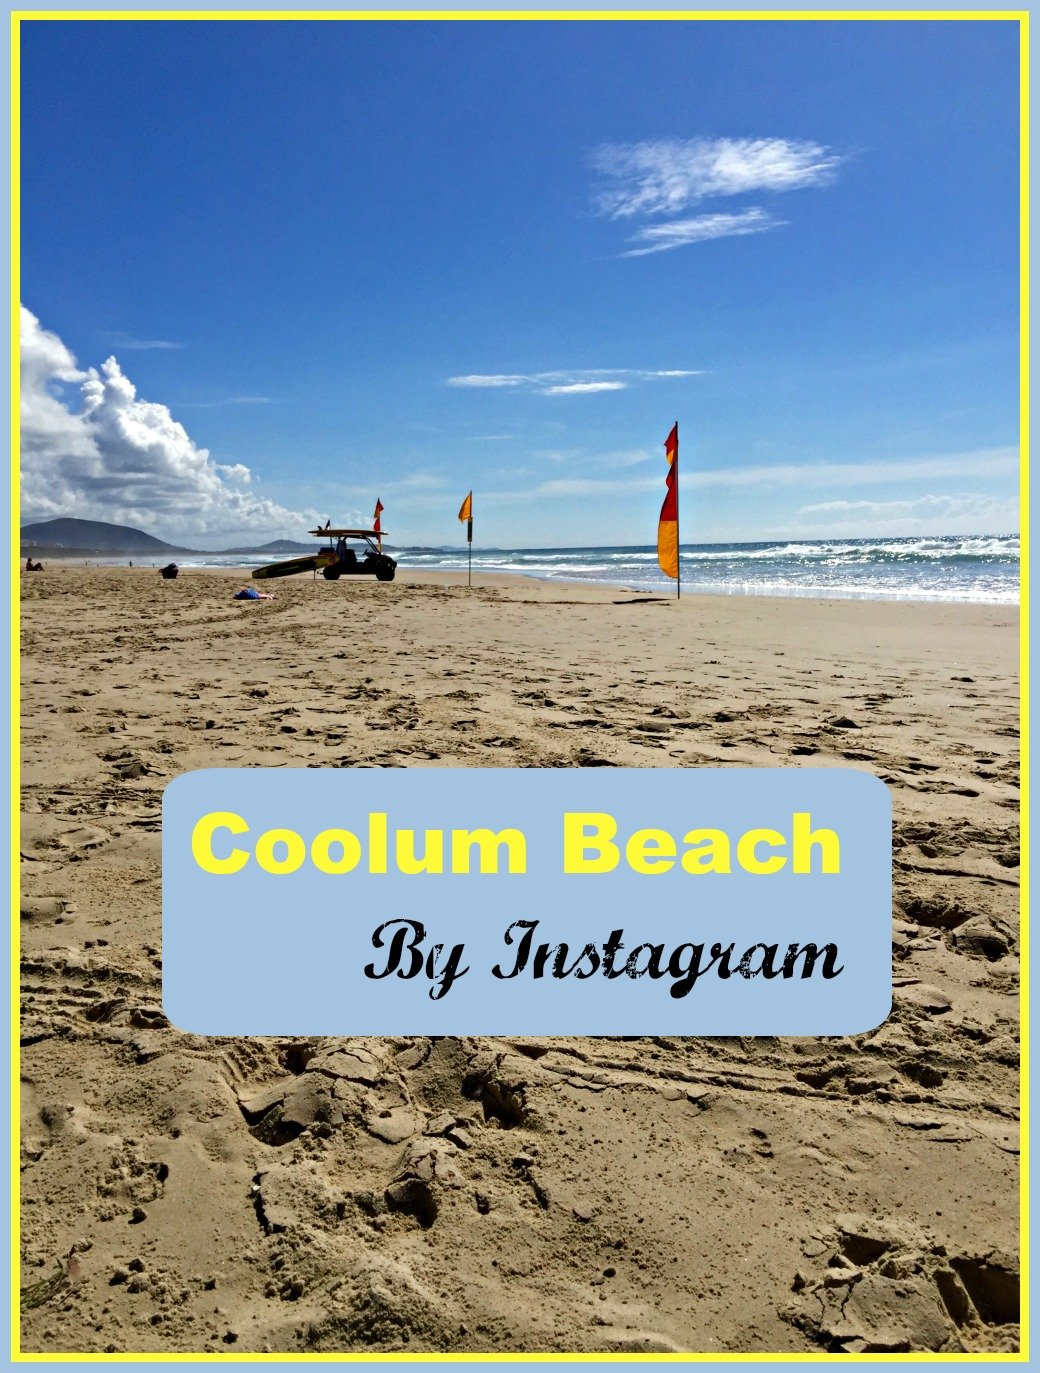 Coolum Beach by Instagram